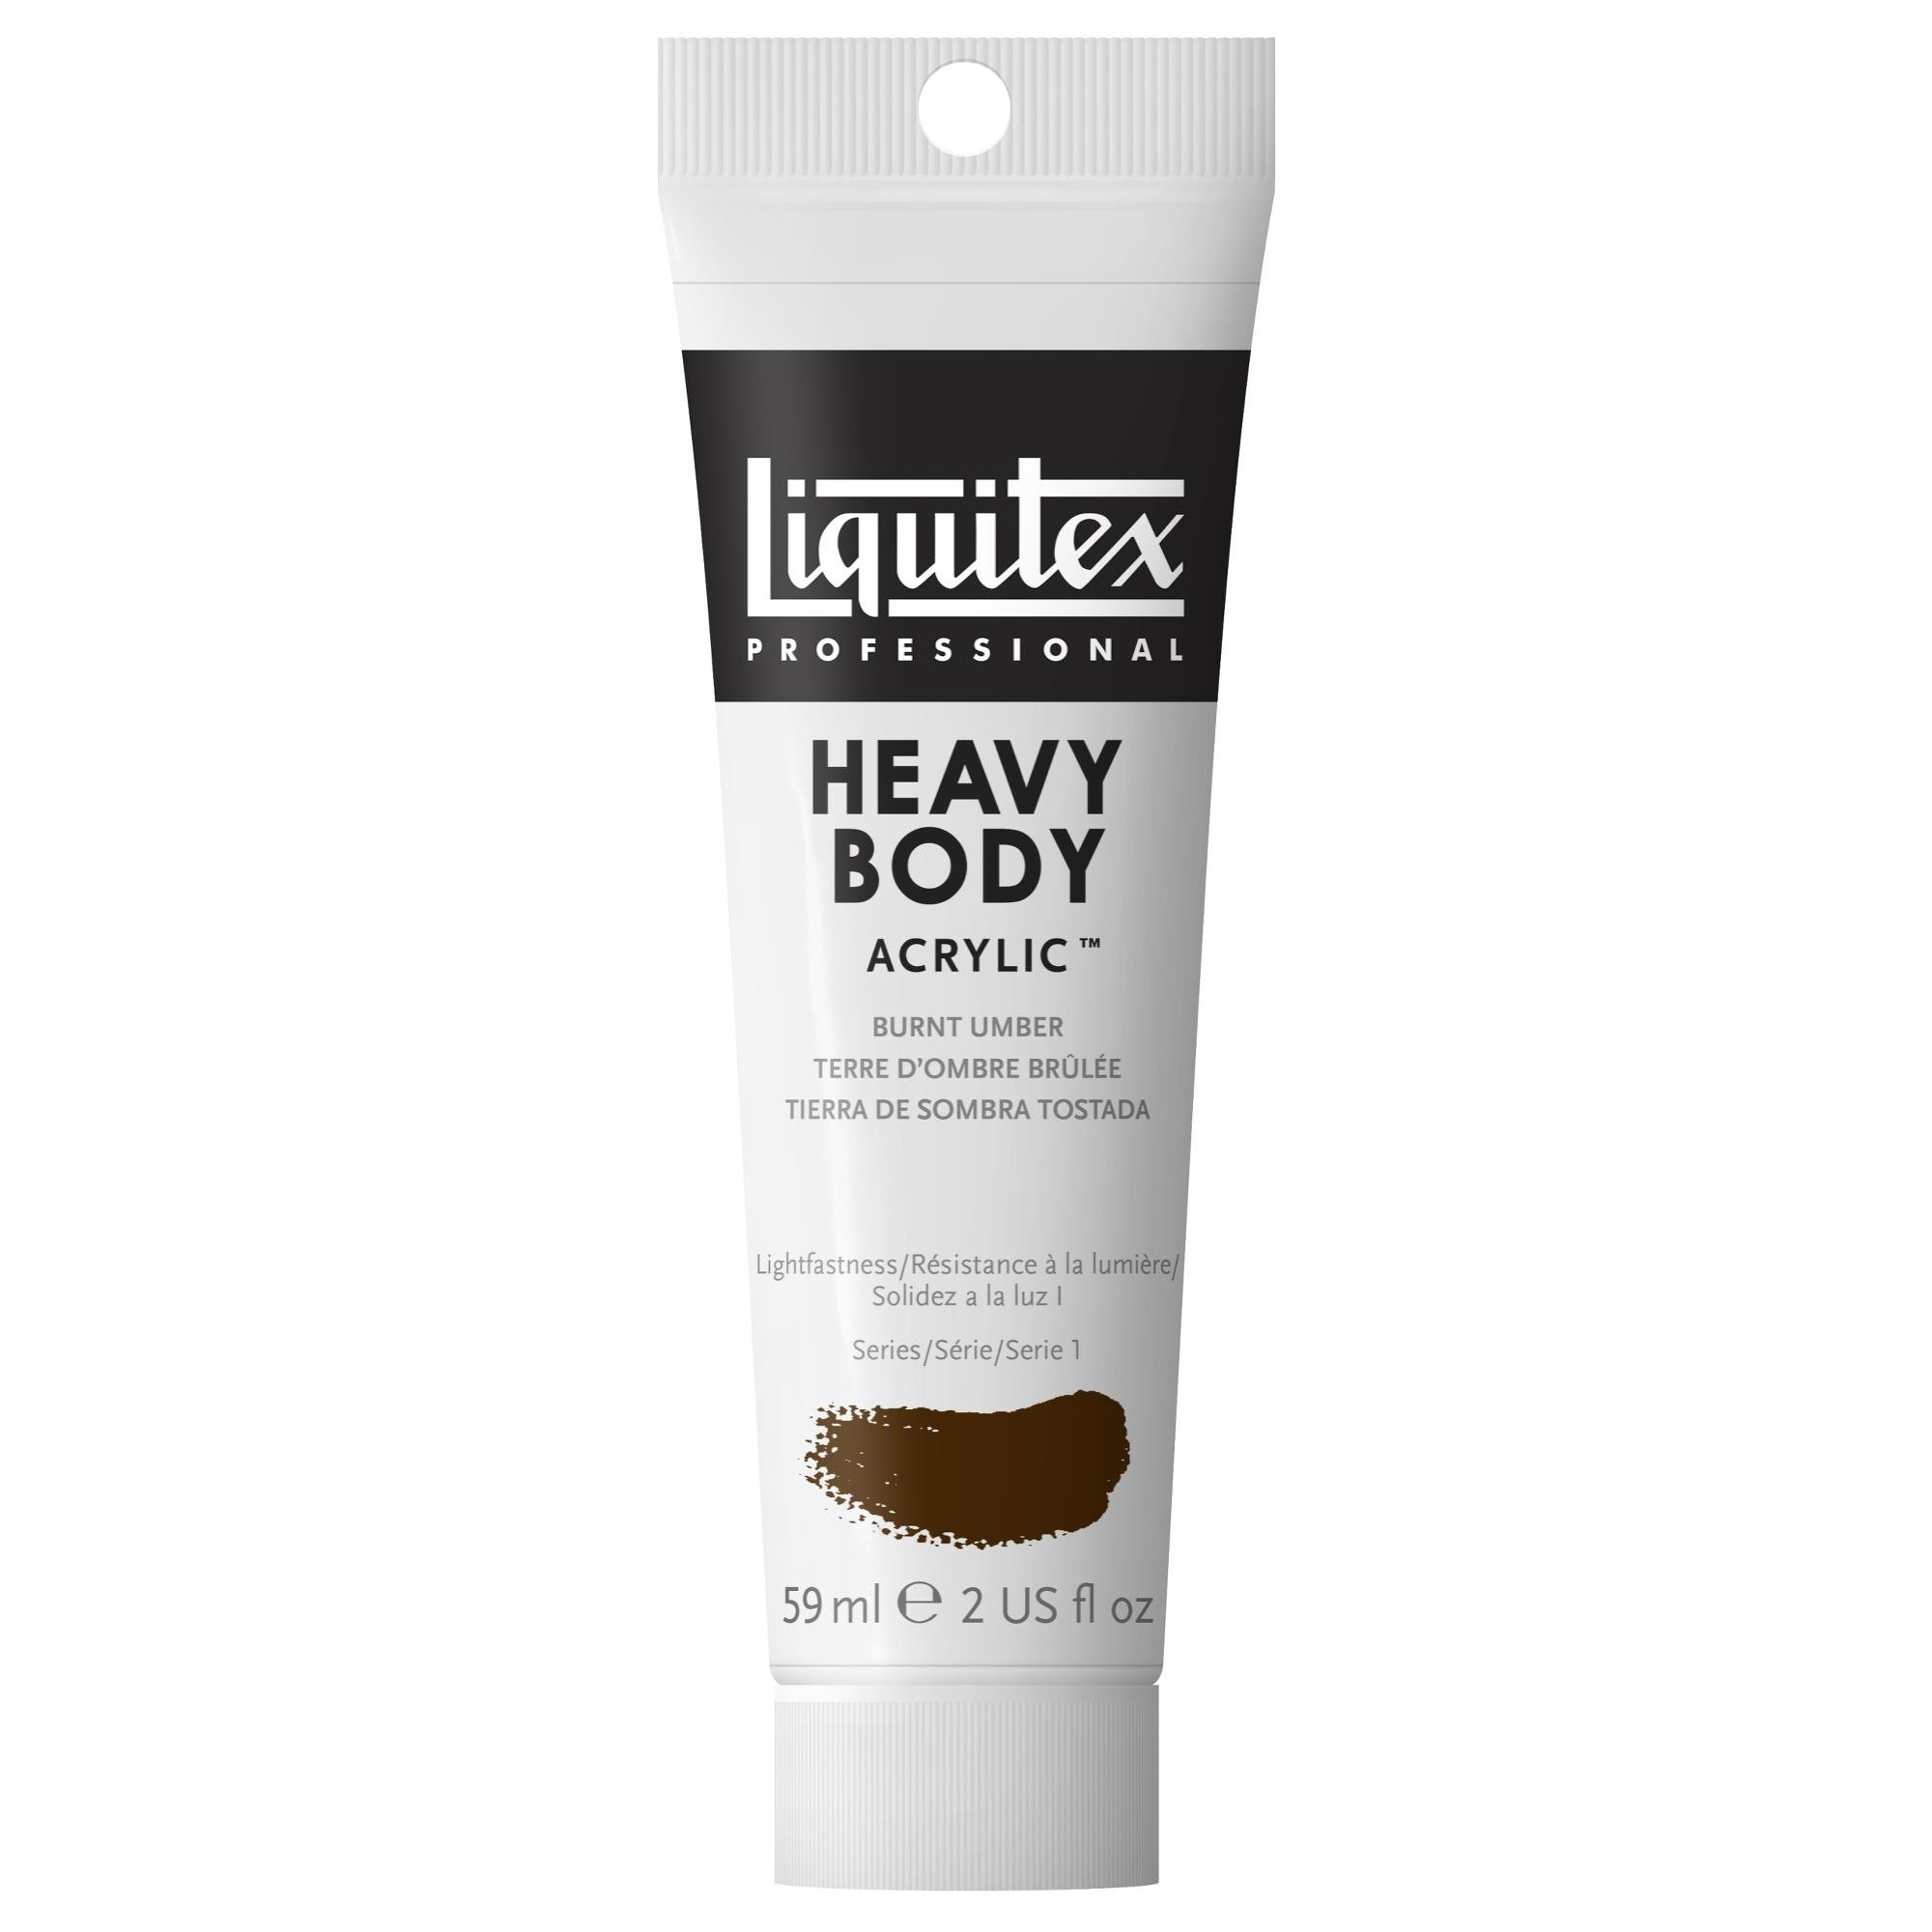 Liquitex Professional Heavy Body Acrylic Paint, 2-oz Tube, Burnt Umber